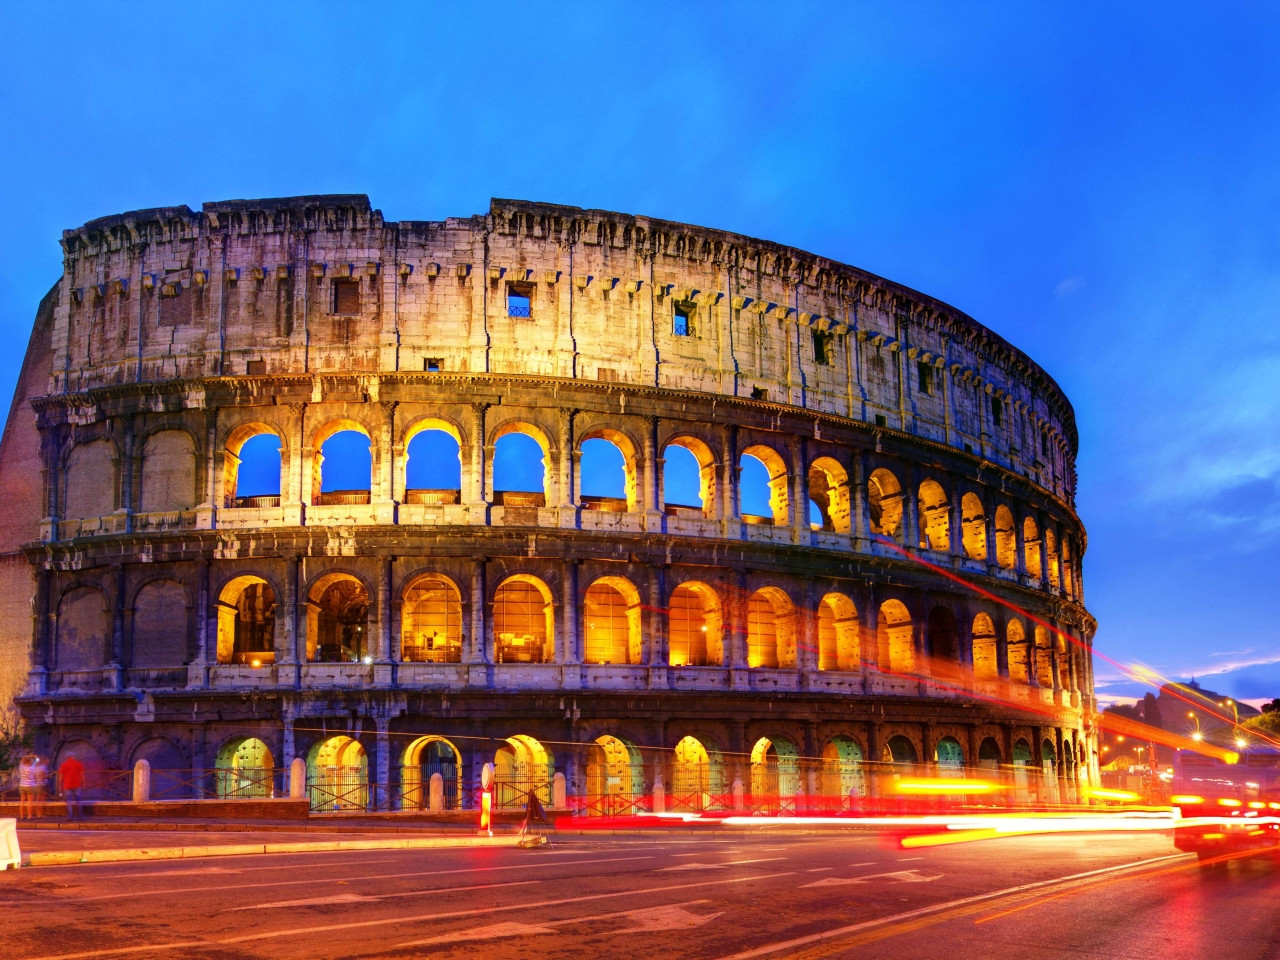 Excursions from Sorrento - Visit Rome - excursion in italy - Excursions from Aminta  - excursion rome - visit rome